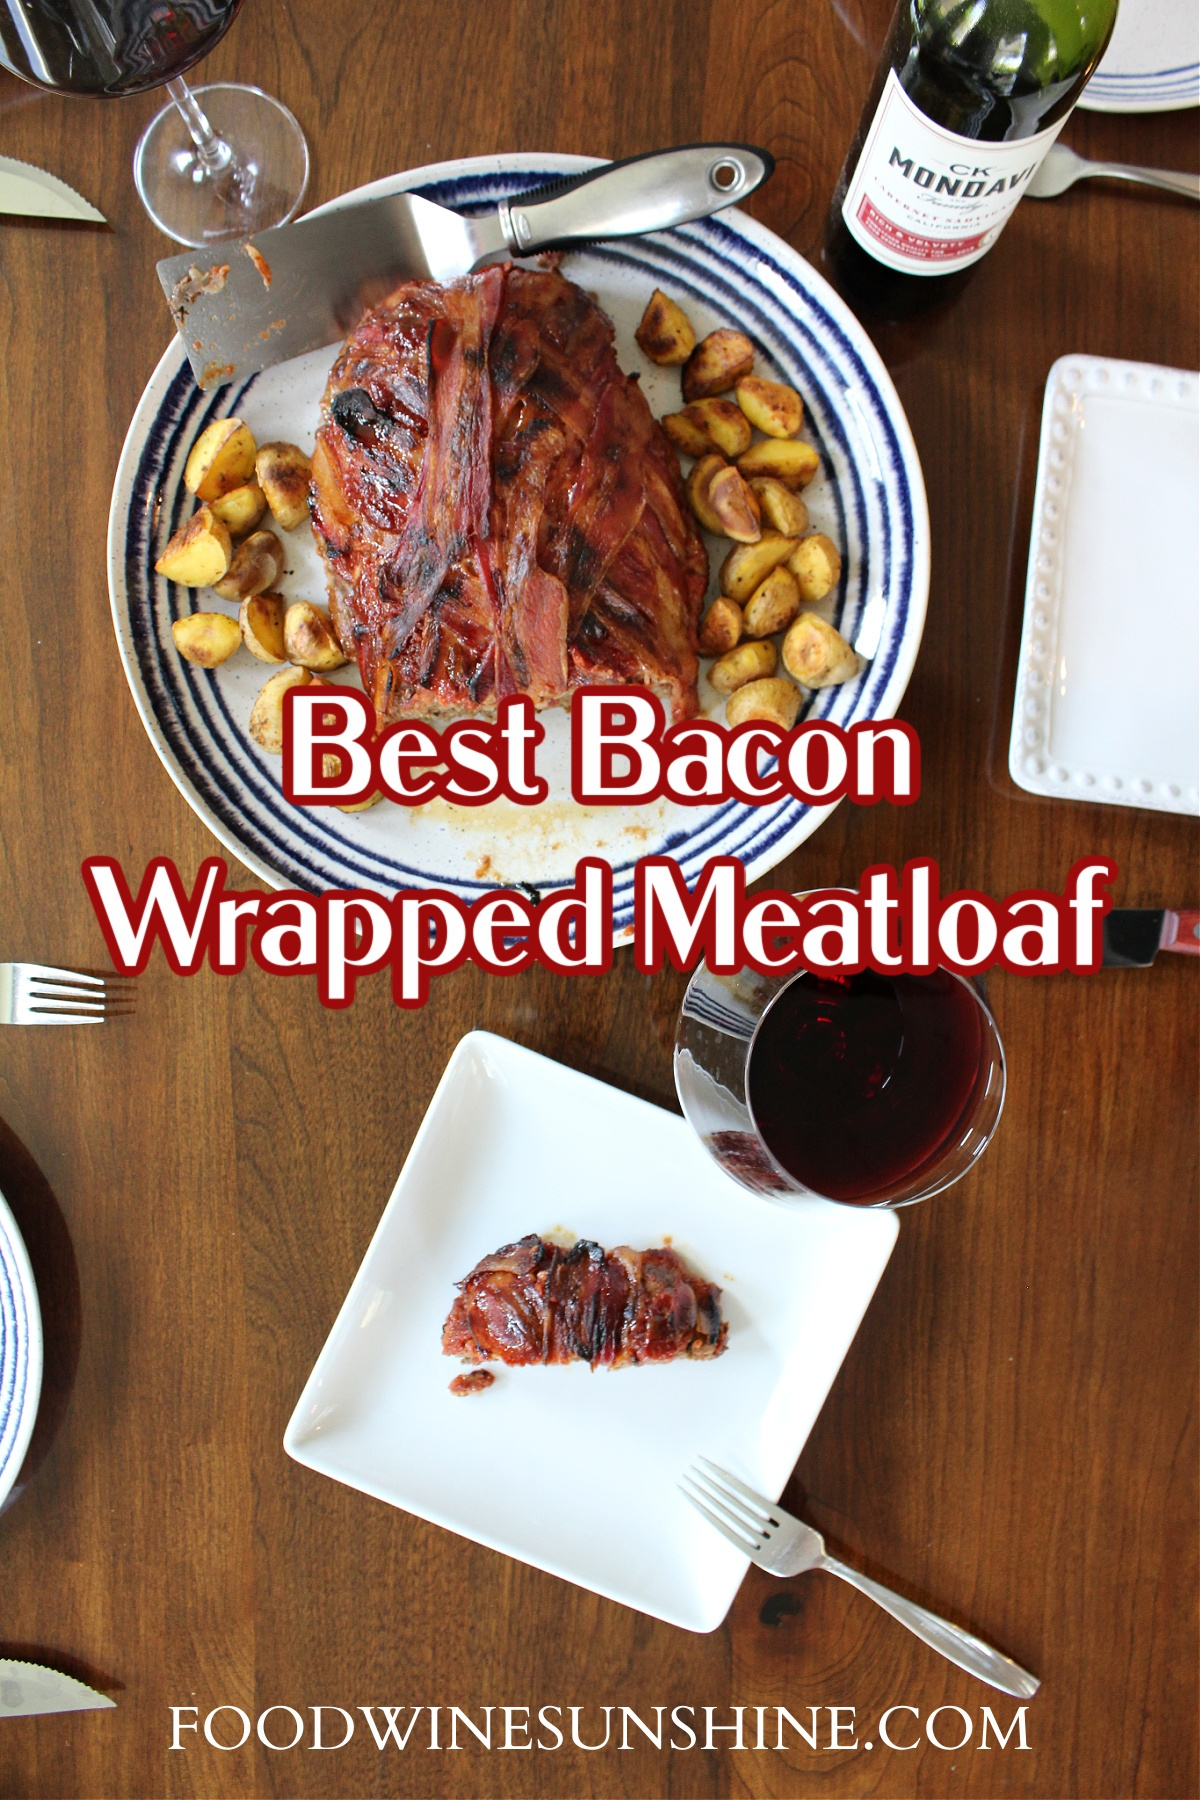 Best Bacon Wrapped Meatloaf